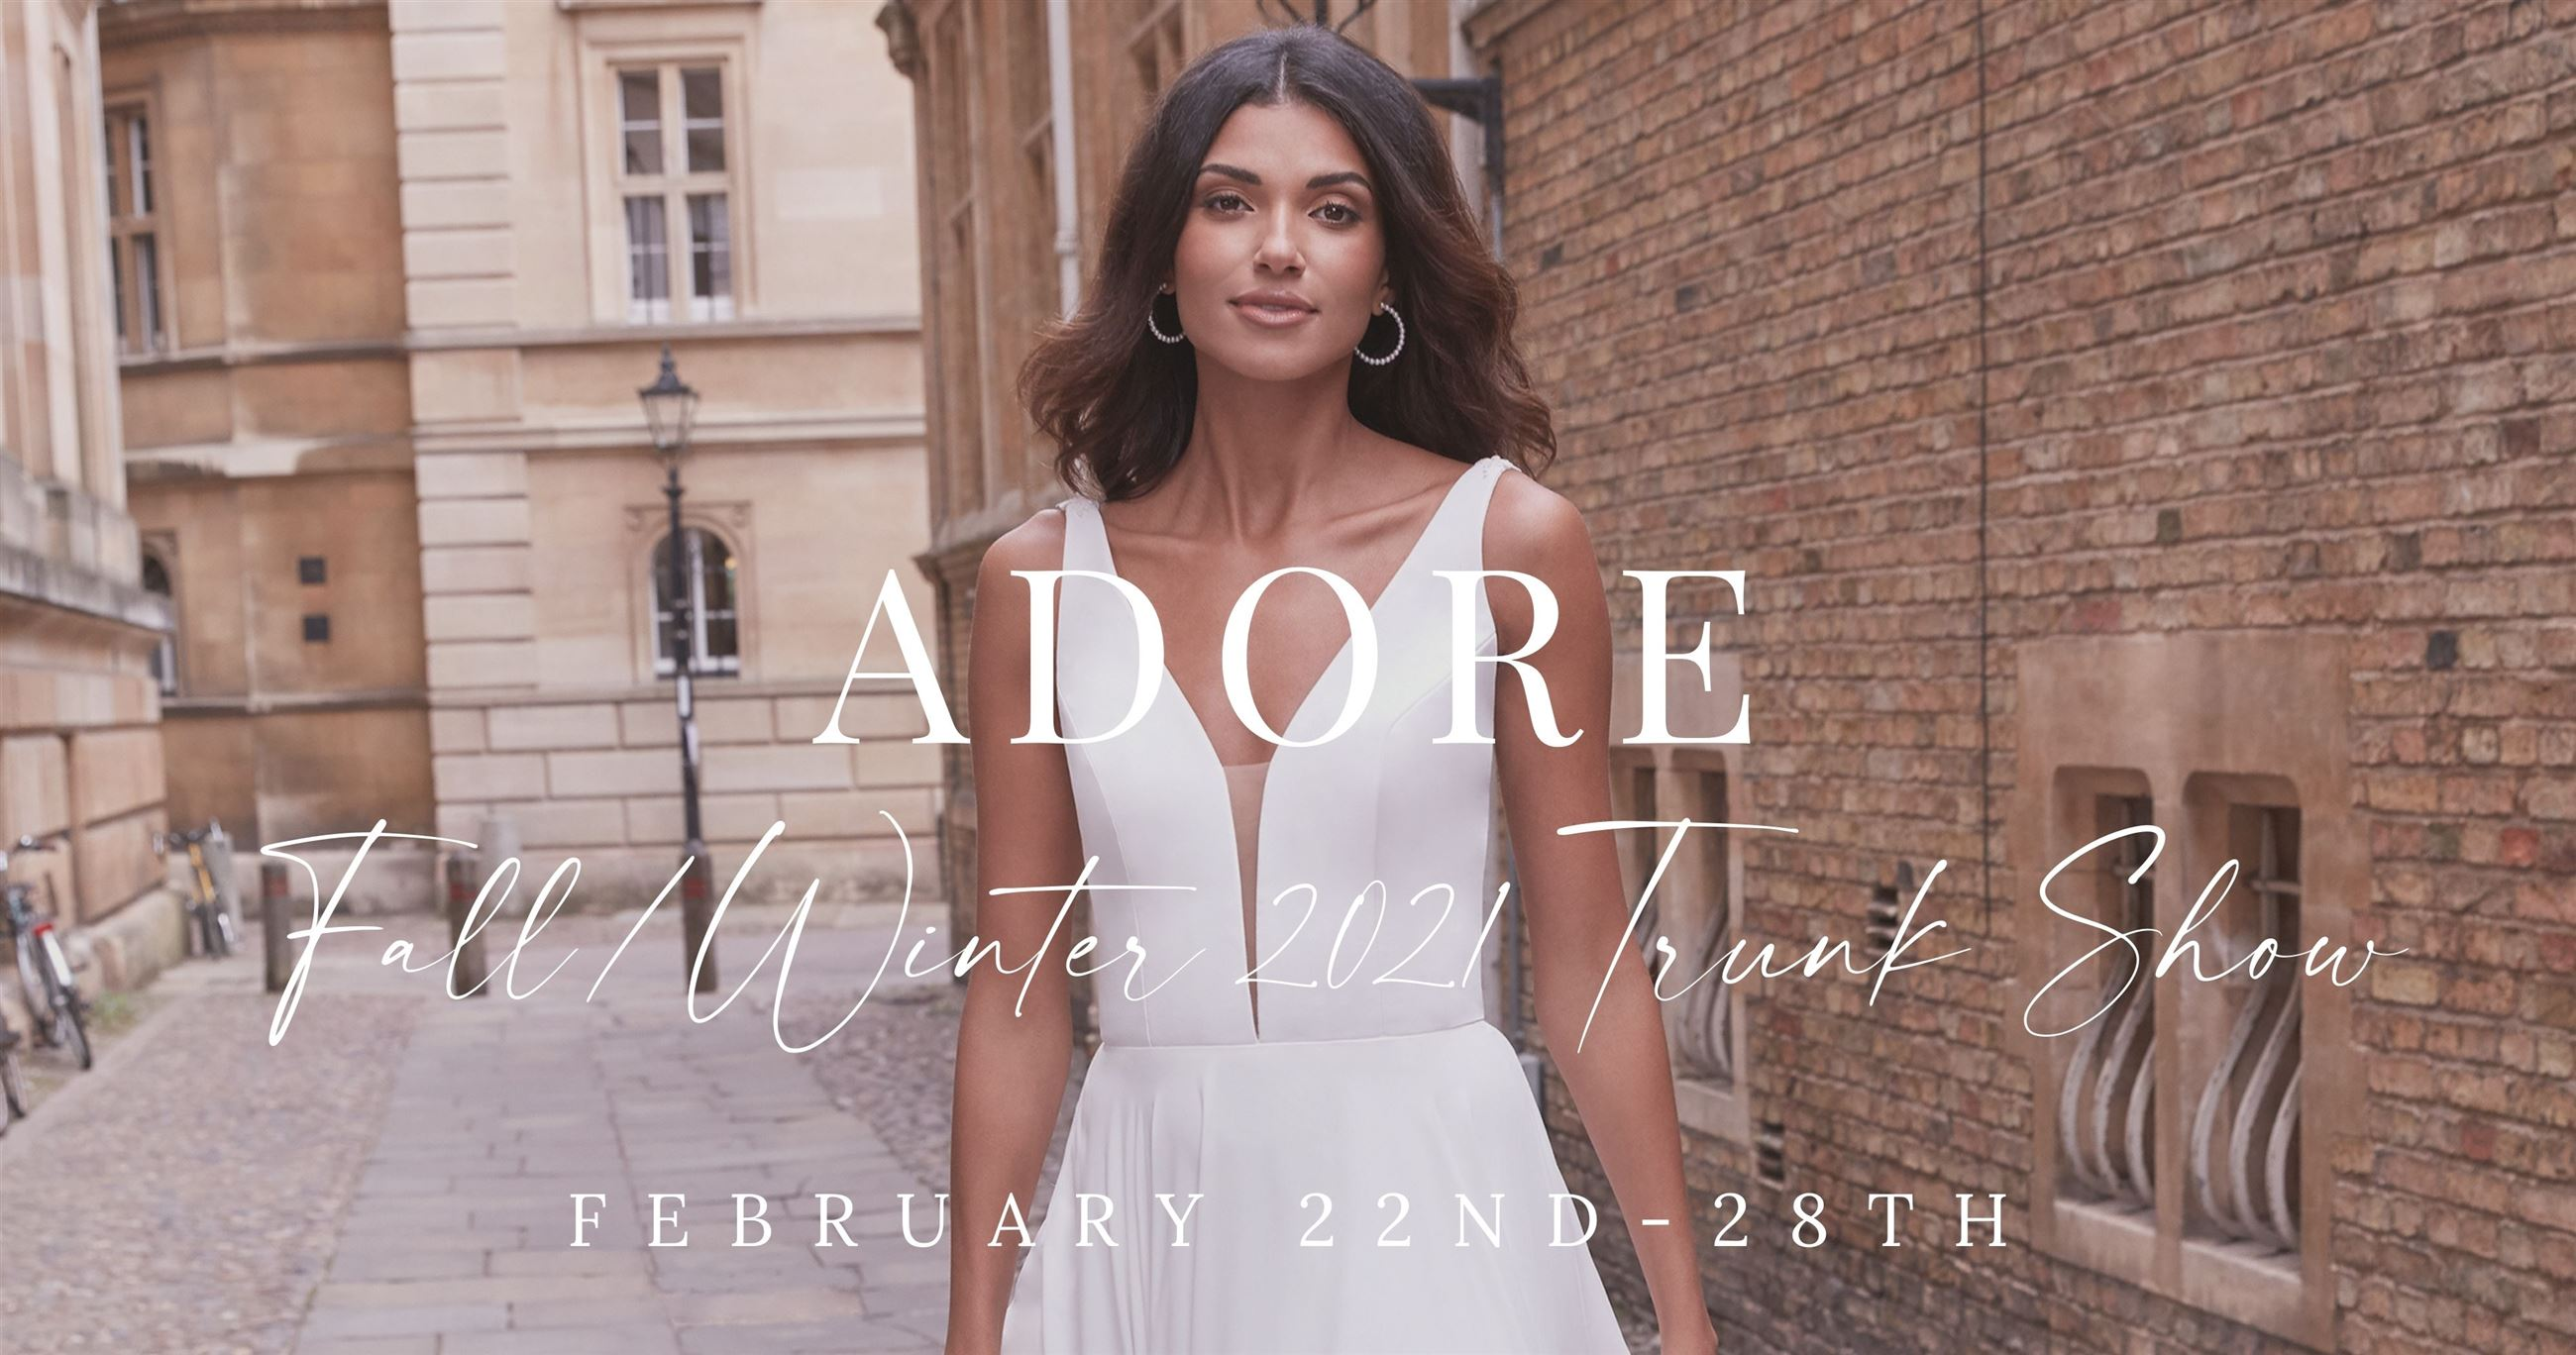 adore by justin alexander fall/winter 2021 trunk show february 19th-21st